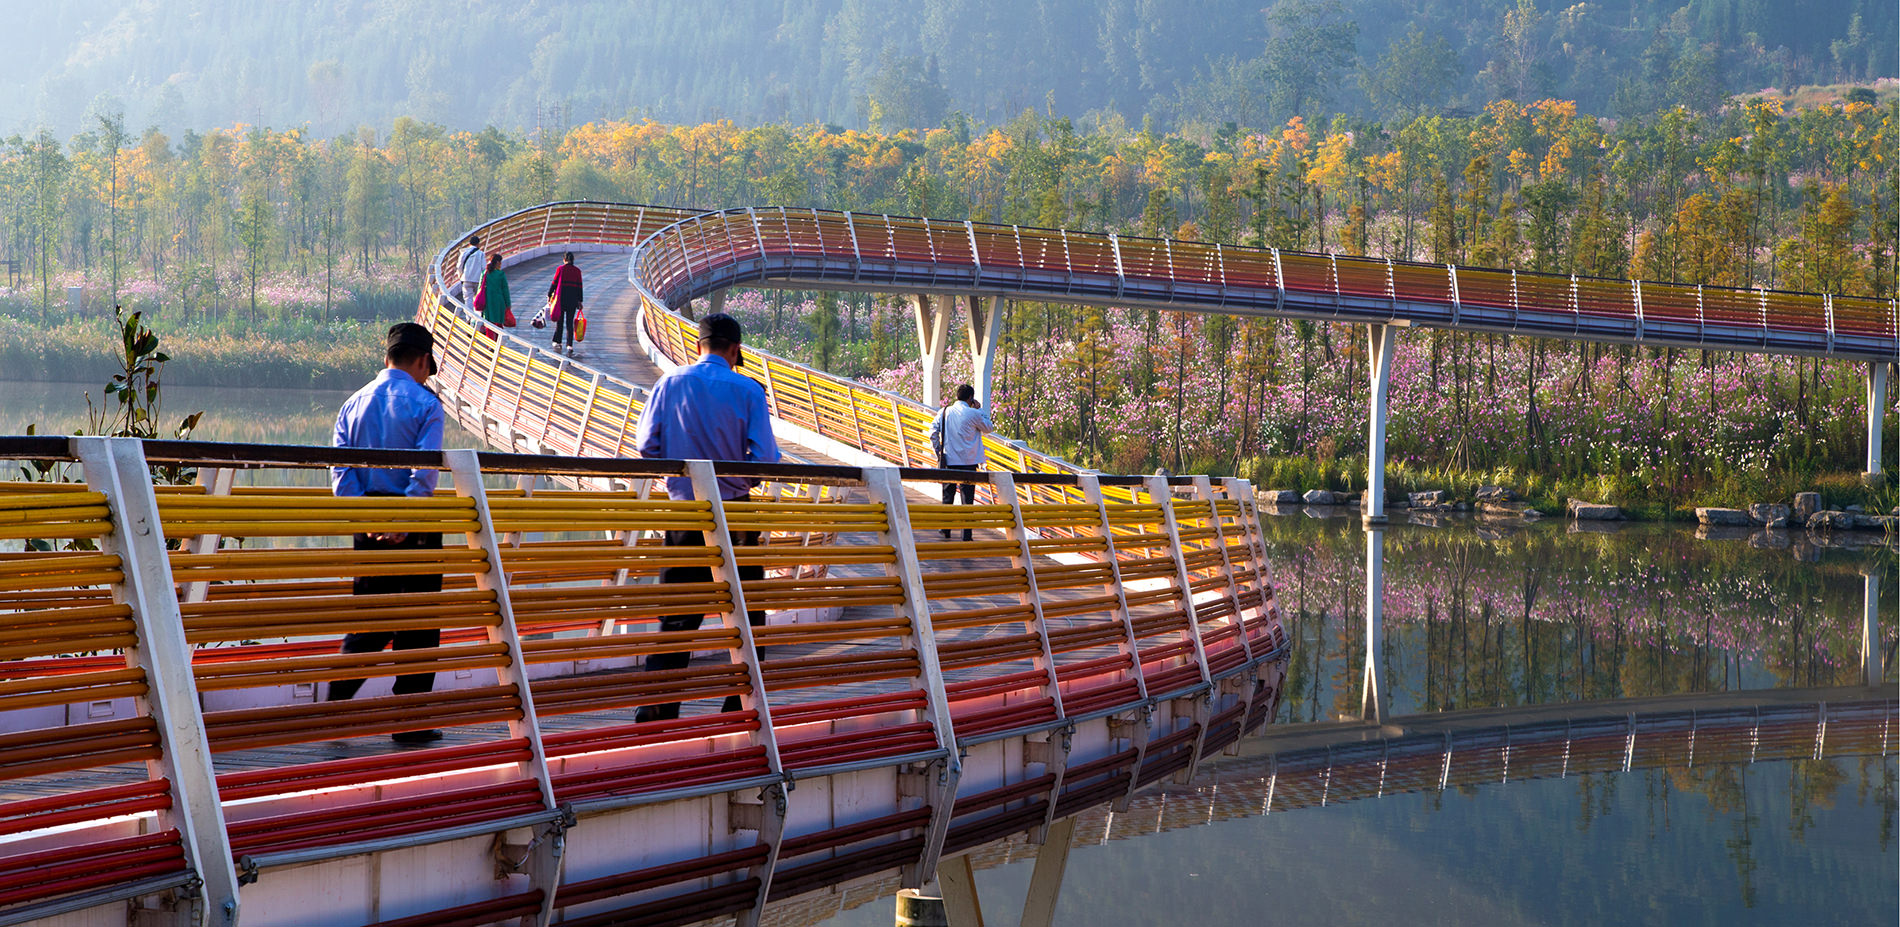 Liupanshui China  City pictures : The rainbow bridge is an iconic cultural landscape element that ...